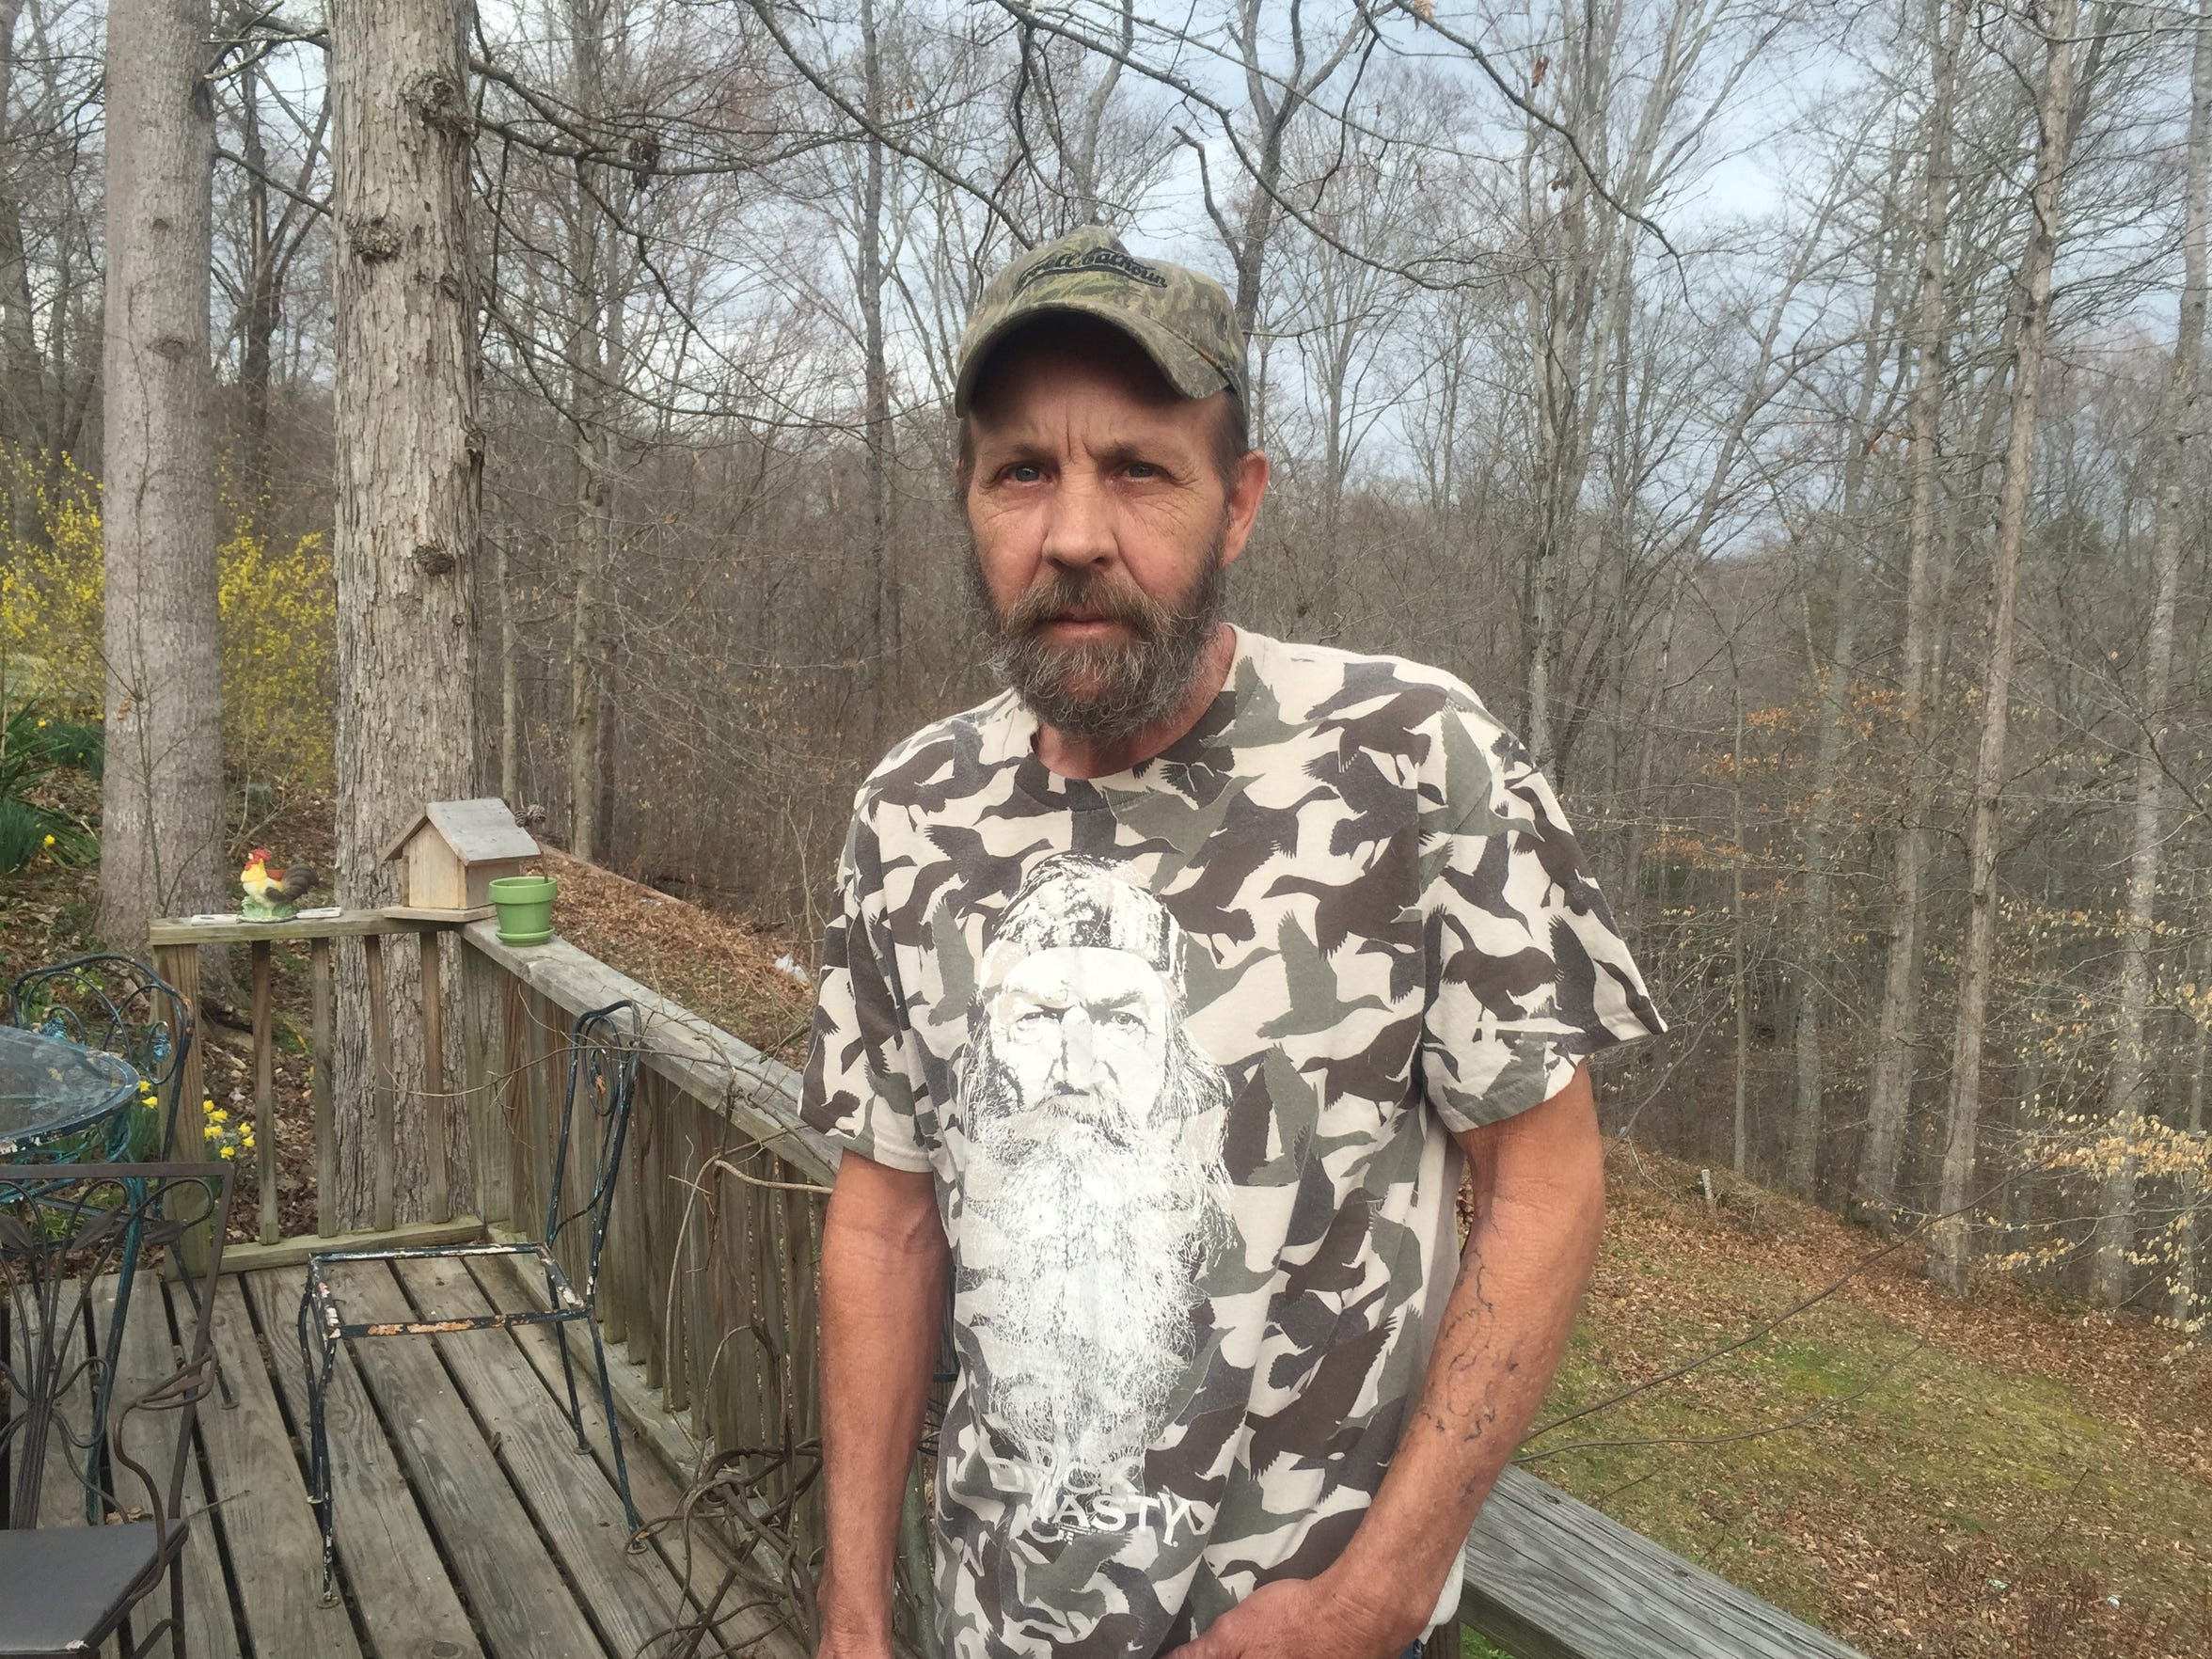 Charlie Pittman, 50, of Clairfield, Tenn., has a bad back, had a heart attack four years ago and since then has had 10 strokes or mini-strokes. He's also had five surgeries on his leg. He was on Social Security disability for 22 months but has gone three years without insurance and can't afford the medications that he needs.